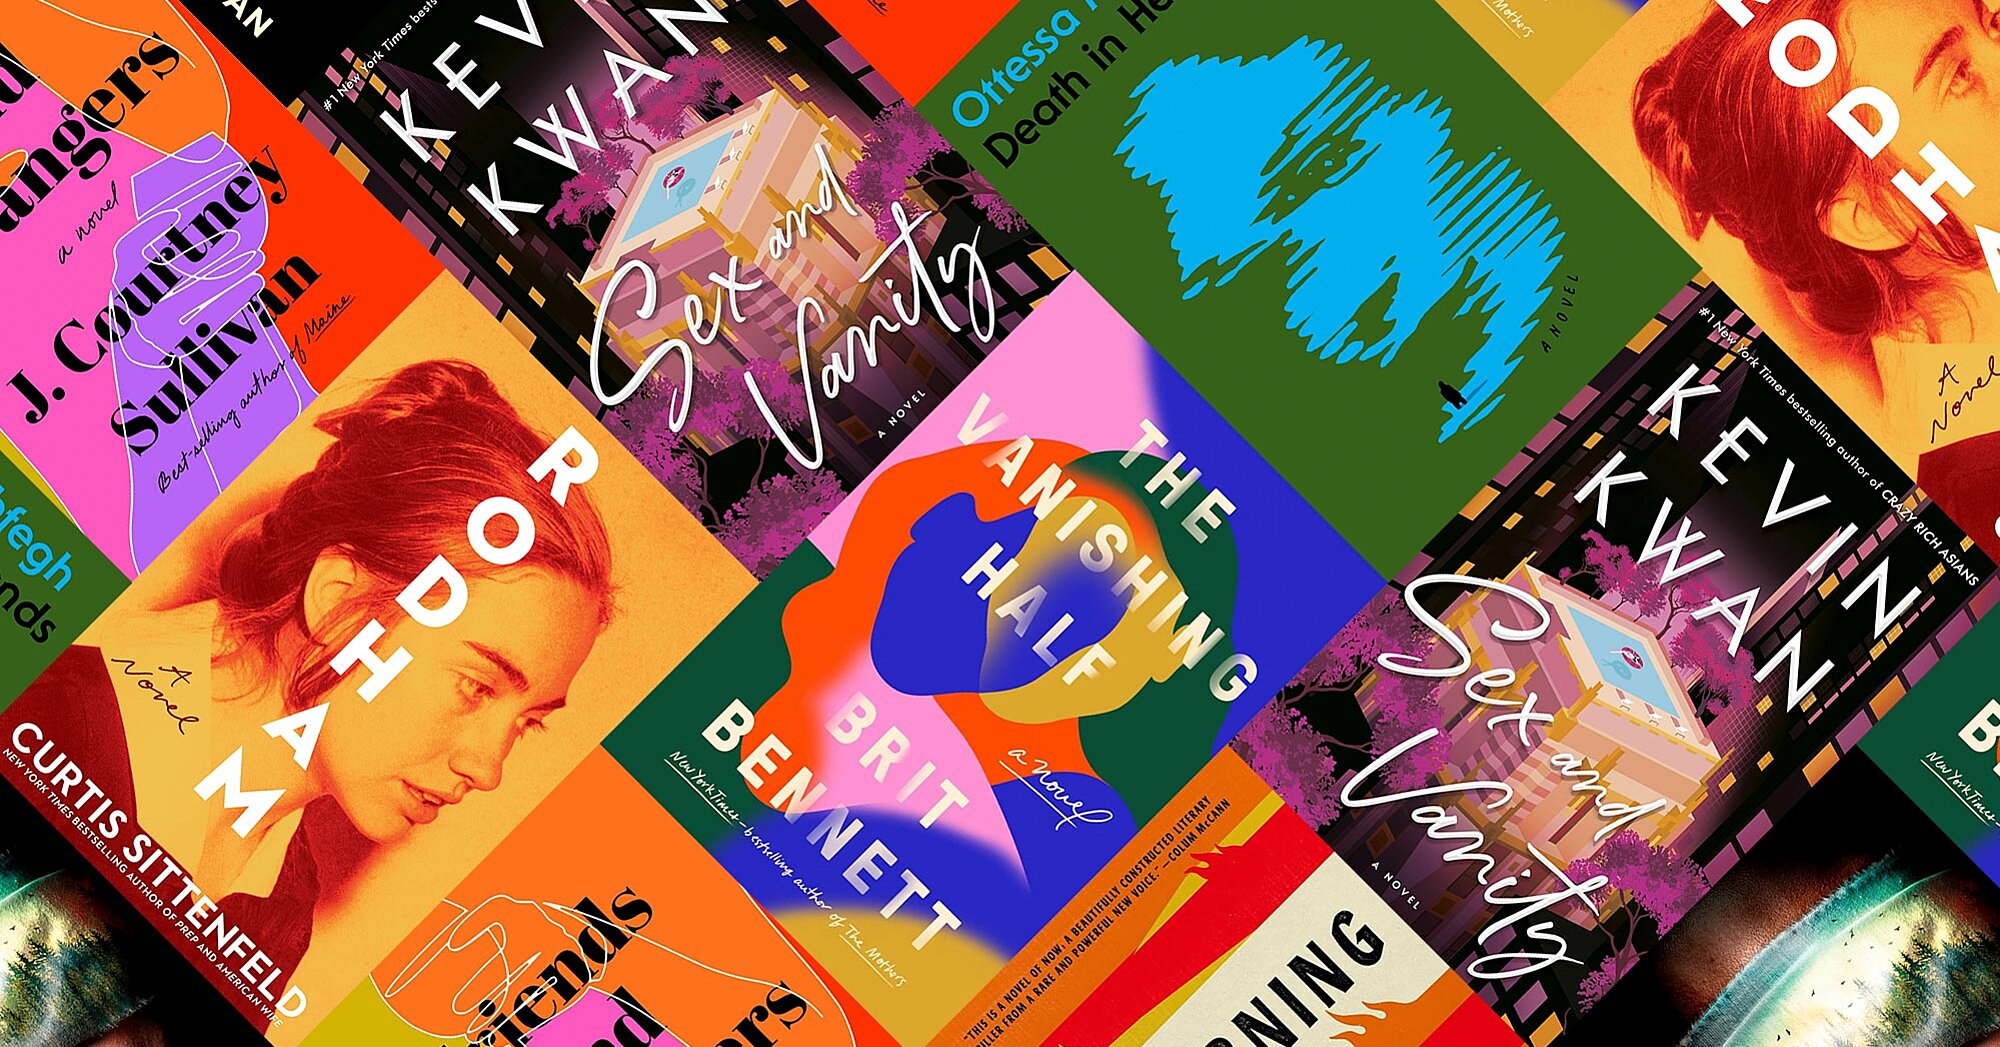 The summer's 30 hottest books